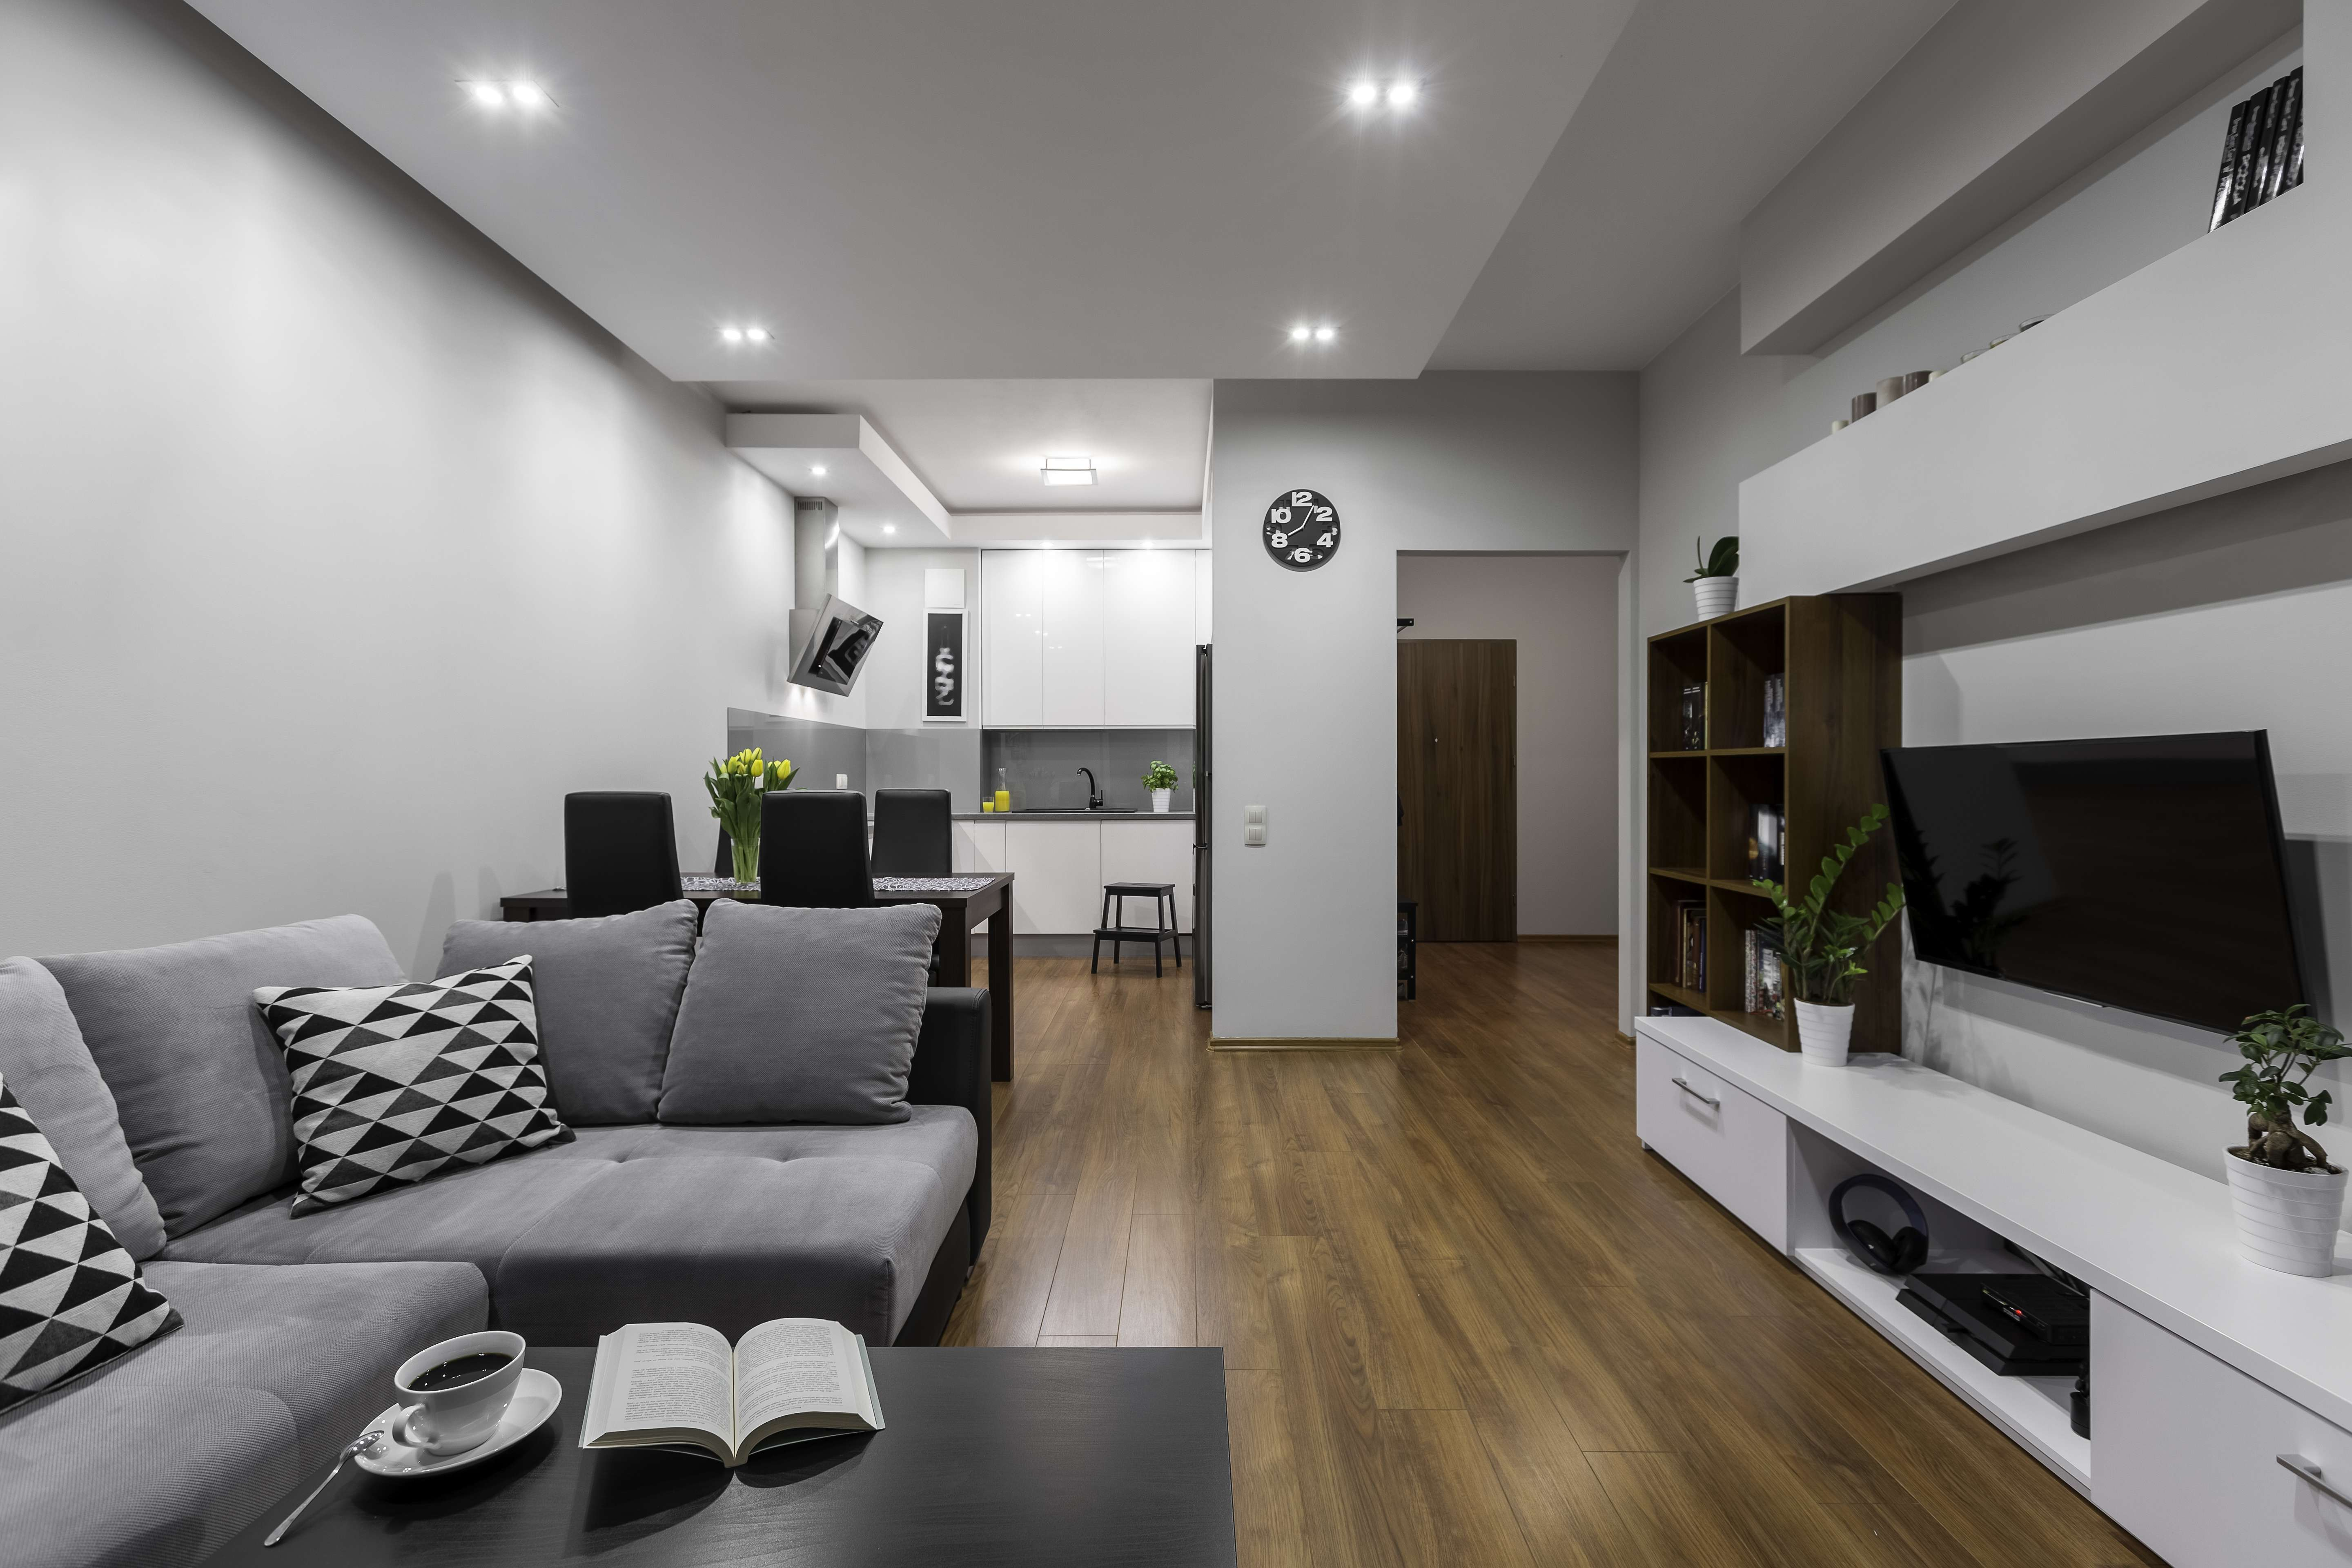 Furnished apartment with garden (city center) in Sendling (München)